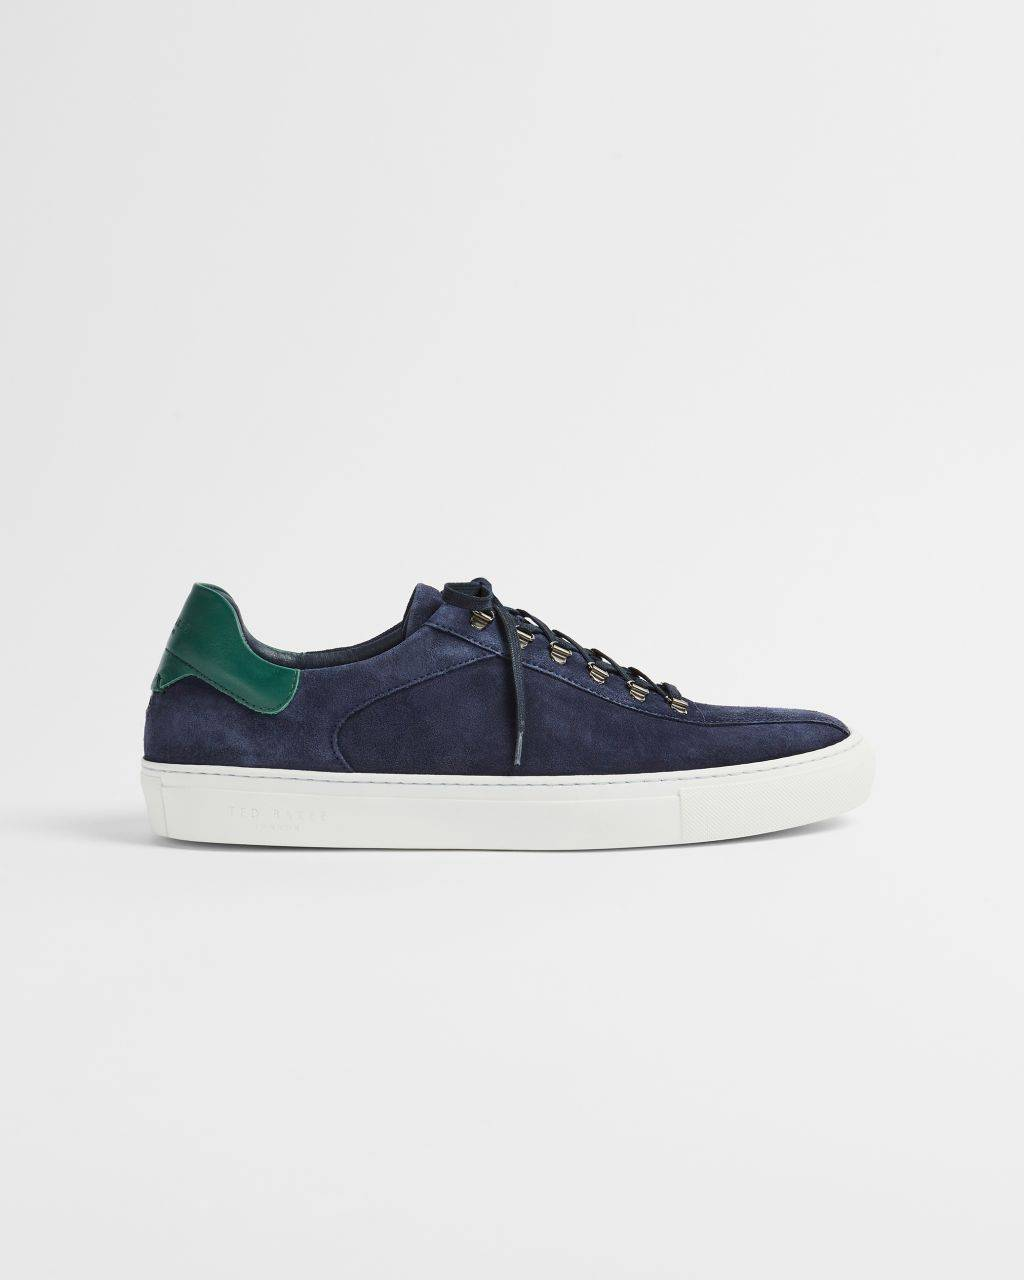 Ted Baker Hiker Lace Suede Trainers  - Navy - Size: UK 11 (EU 45)